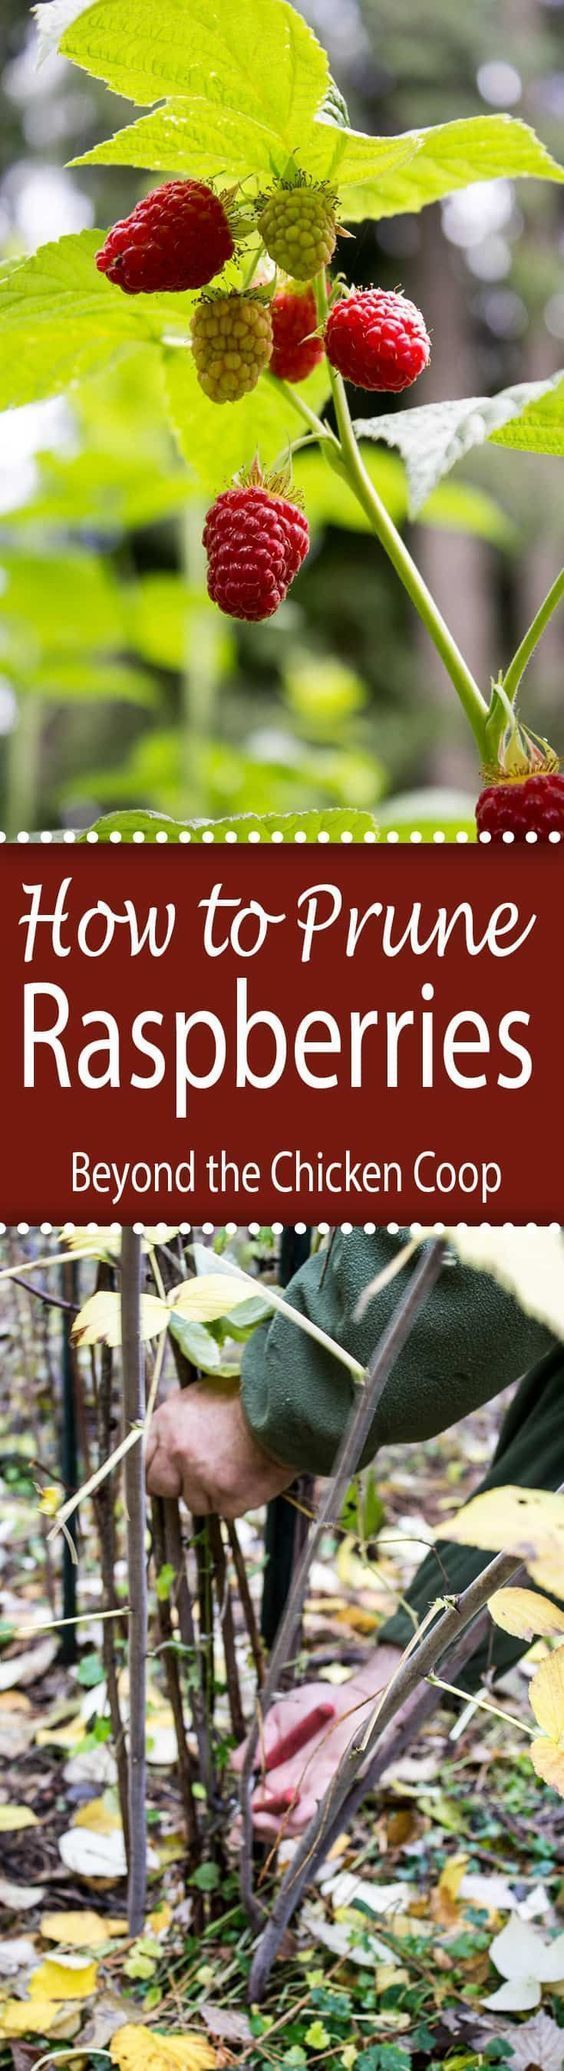 How to Prune Raspberries. #organicgardens